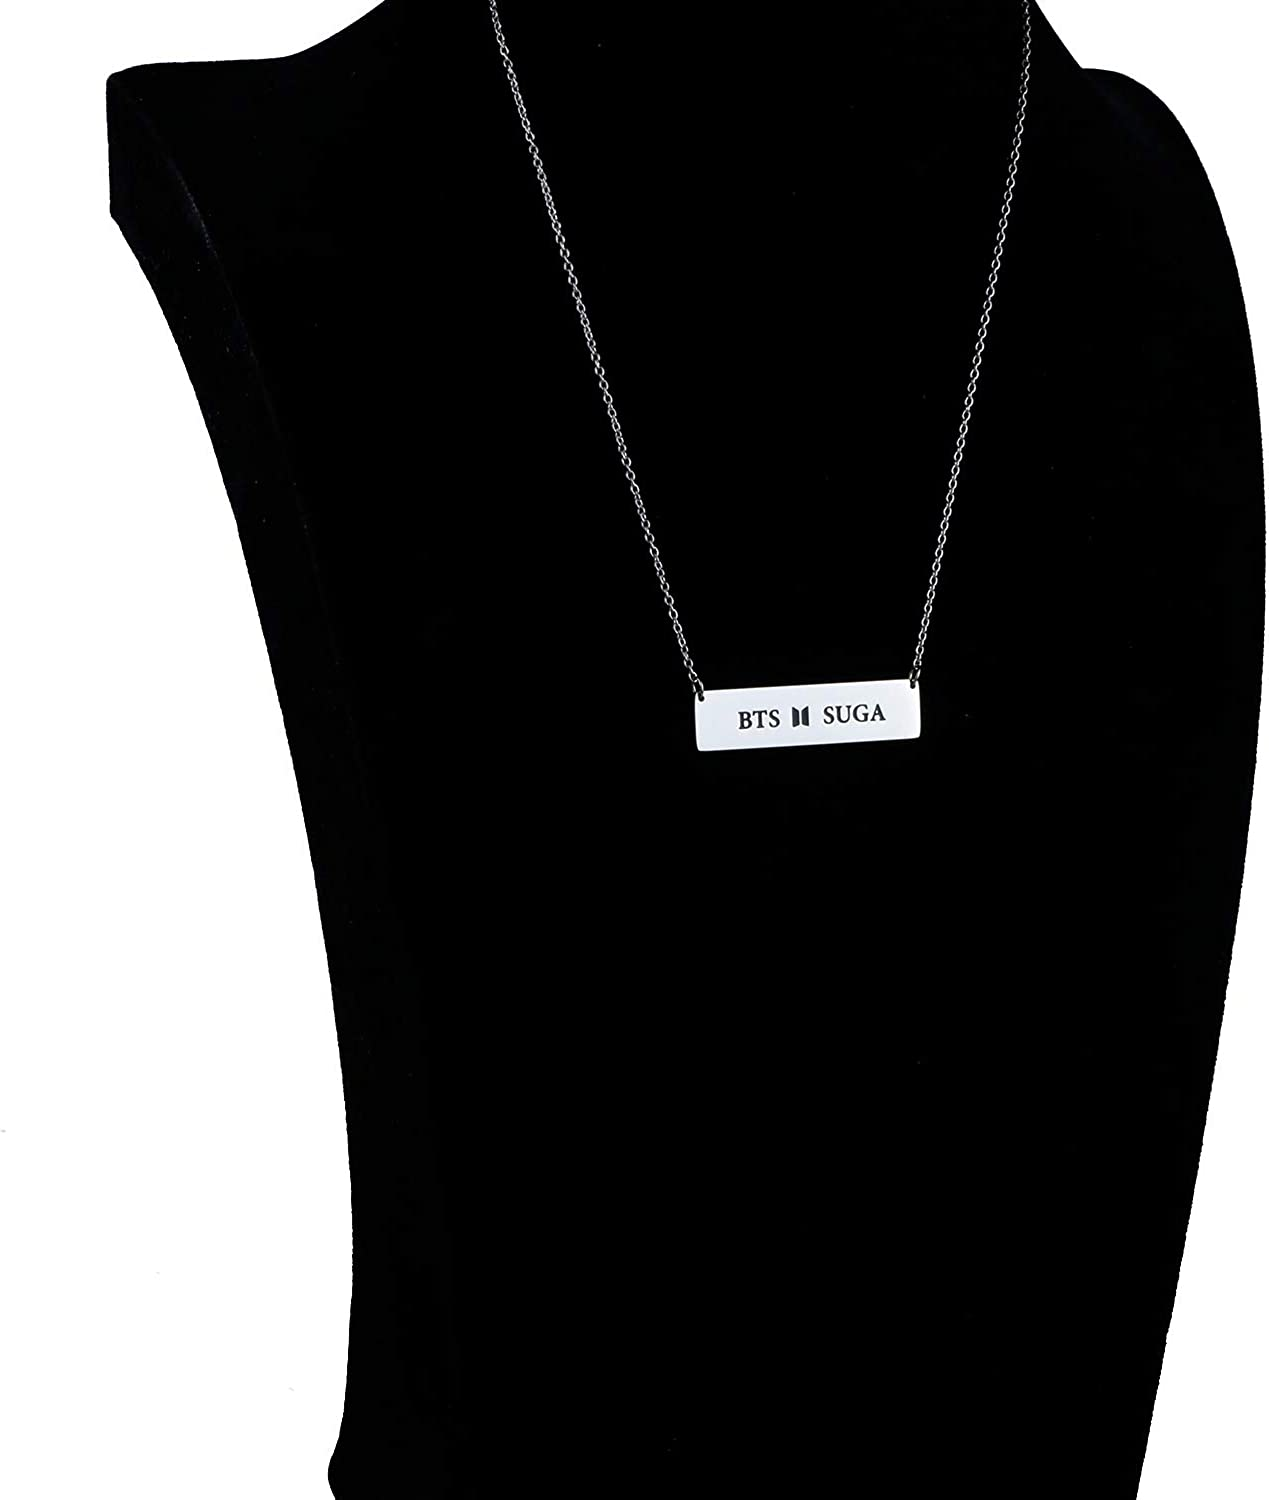 Kpop BTS Bangtan Boys Necklace Bracelet Love Yourself Army BTS Jewelry for Girls BTS Fans Gift